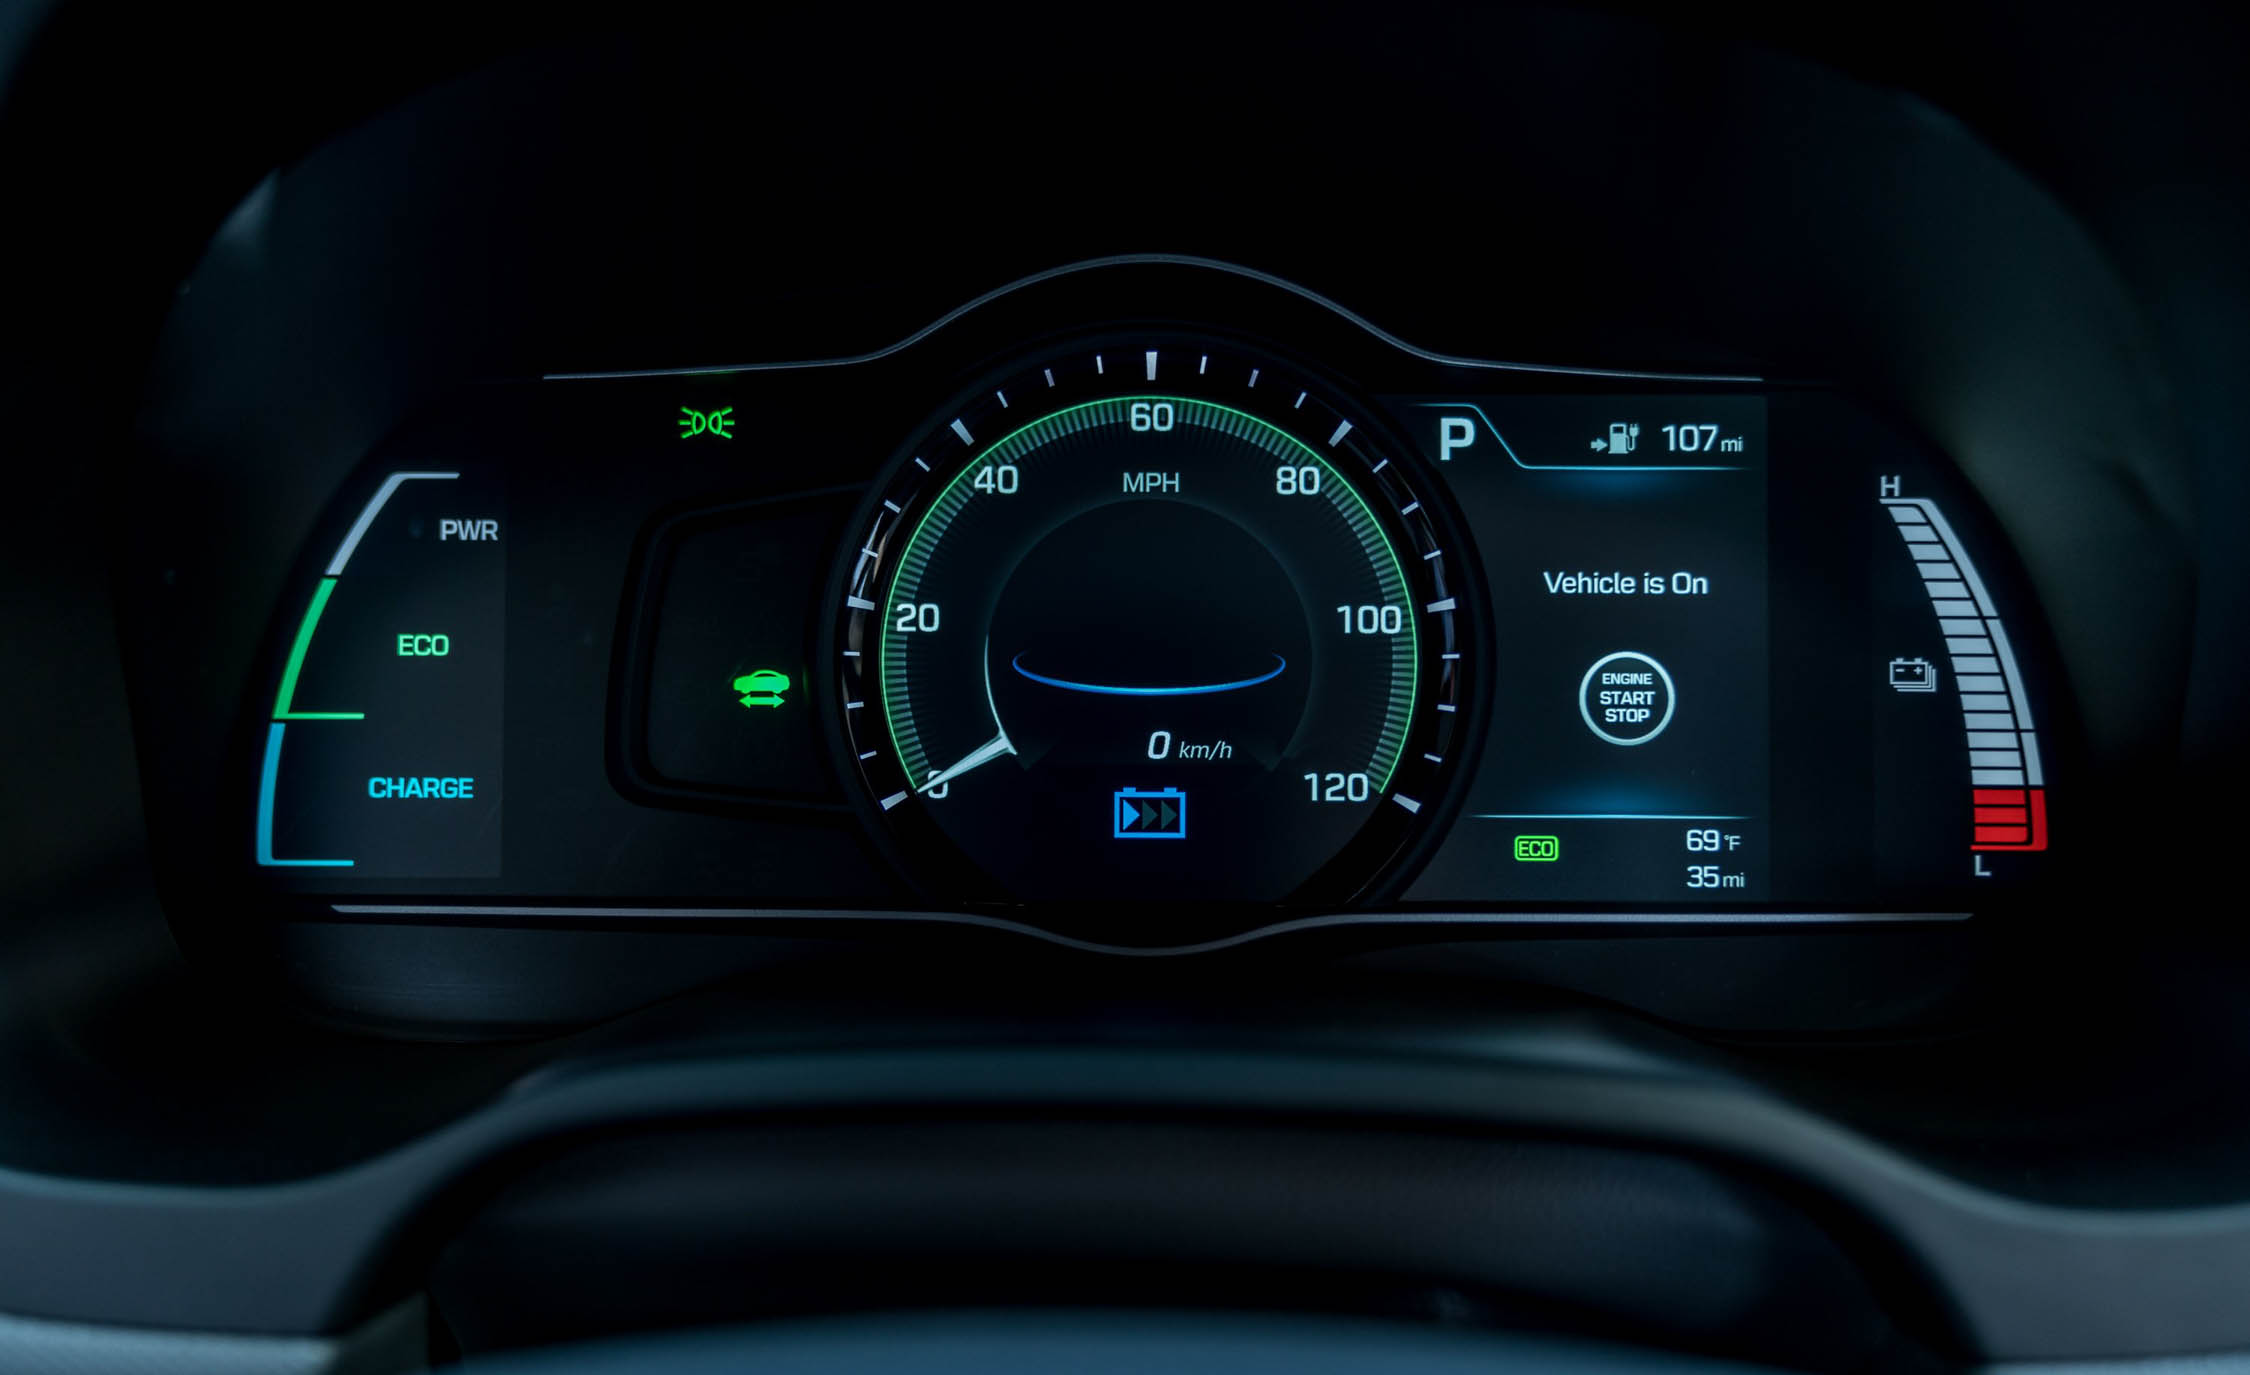 2017 Hyundai Ioniq Electric Interior View Instrument Cluster (Photo 26 of 67)